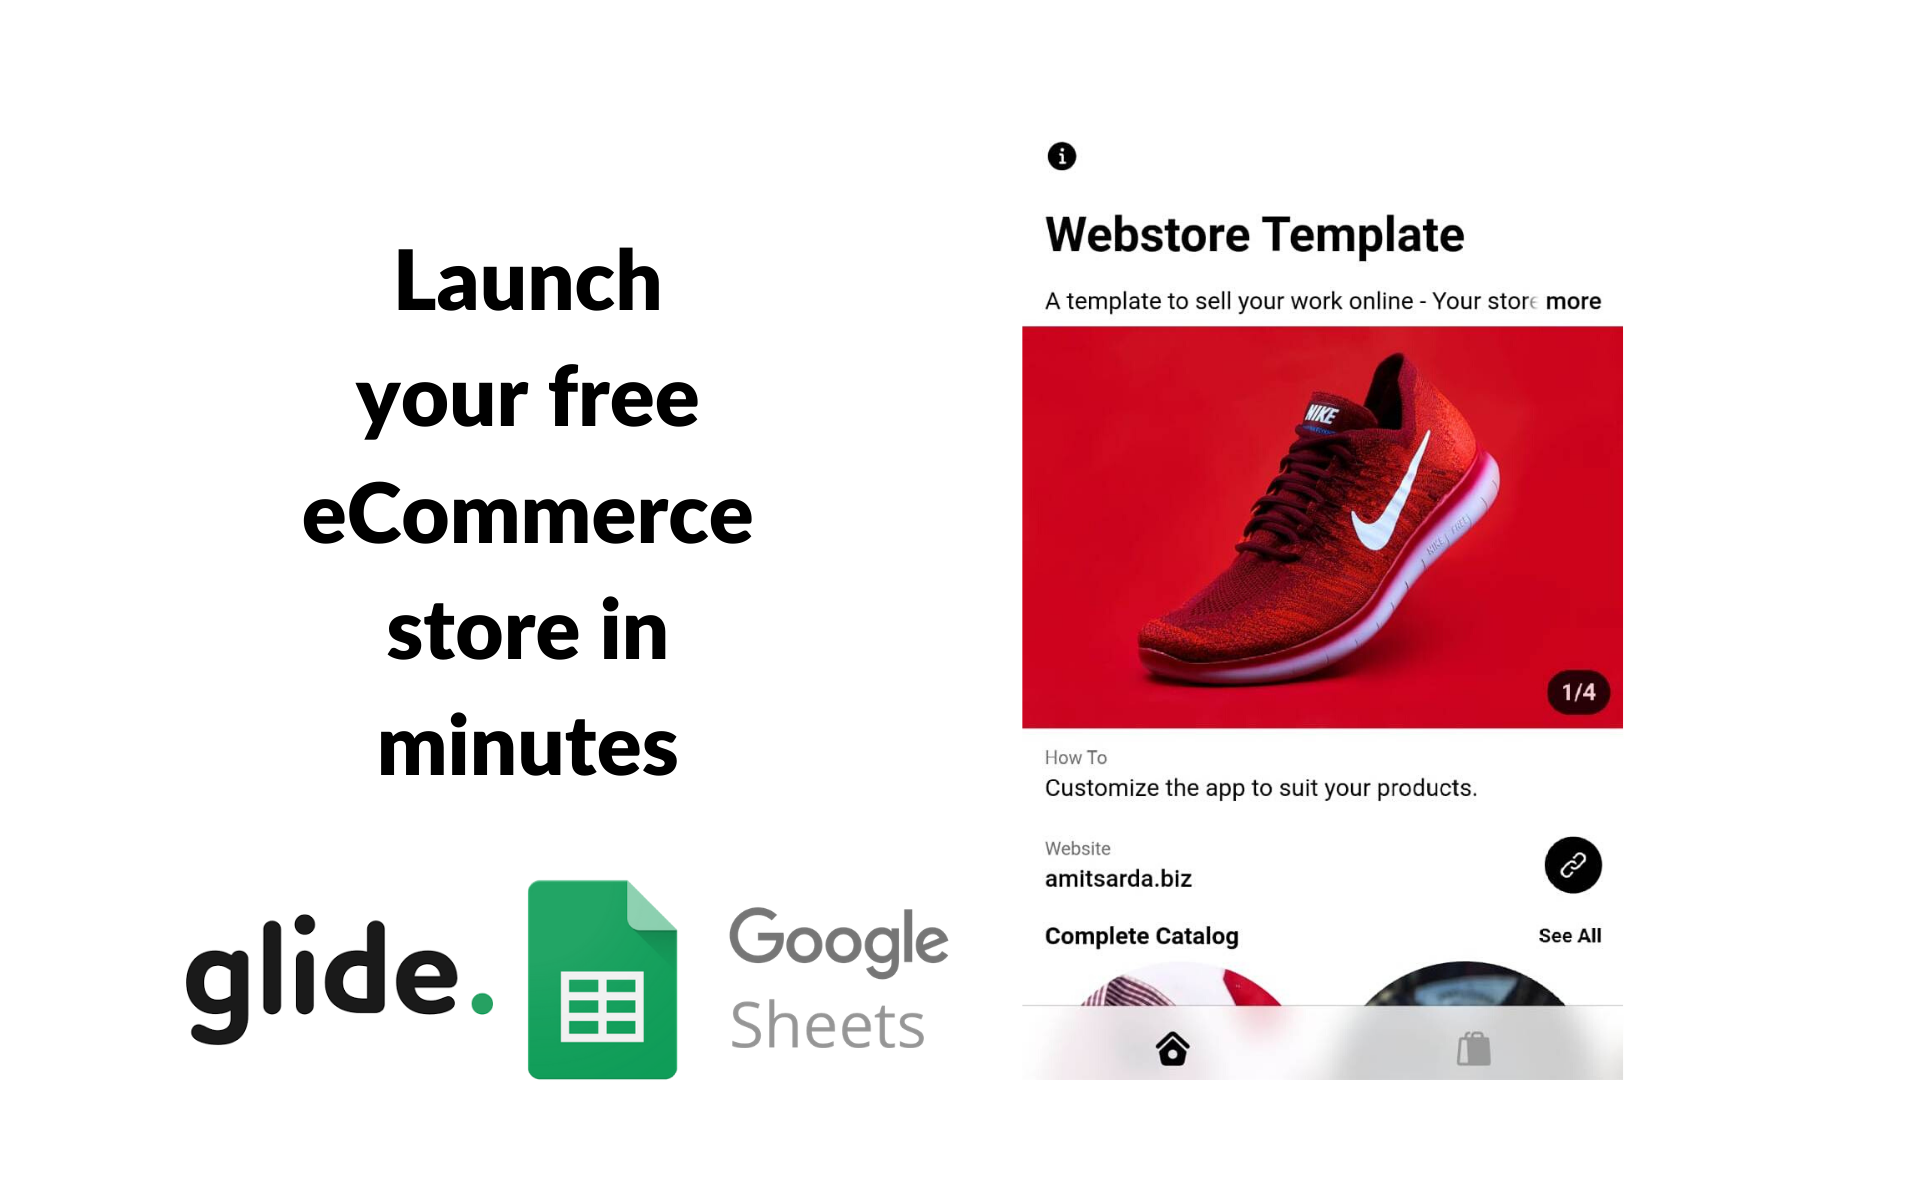 Launch your eCommerce Store in minutes using Glide Apps and Google Sheets